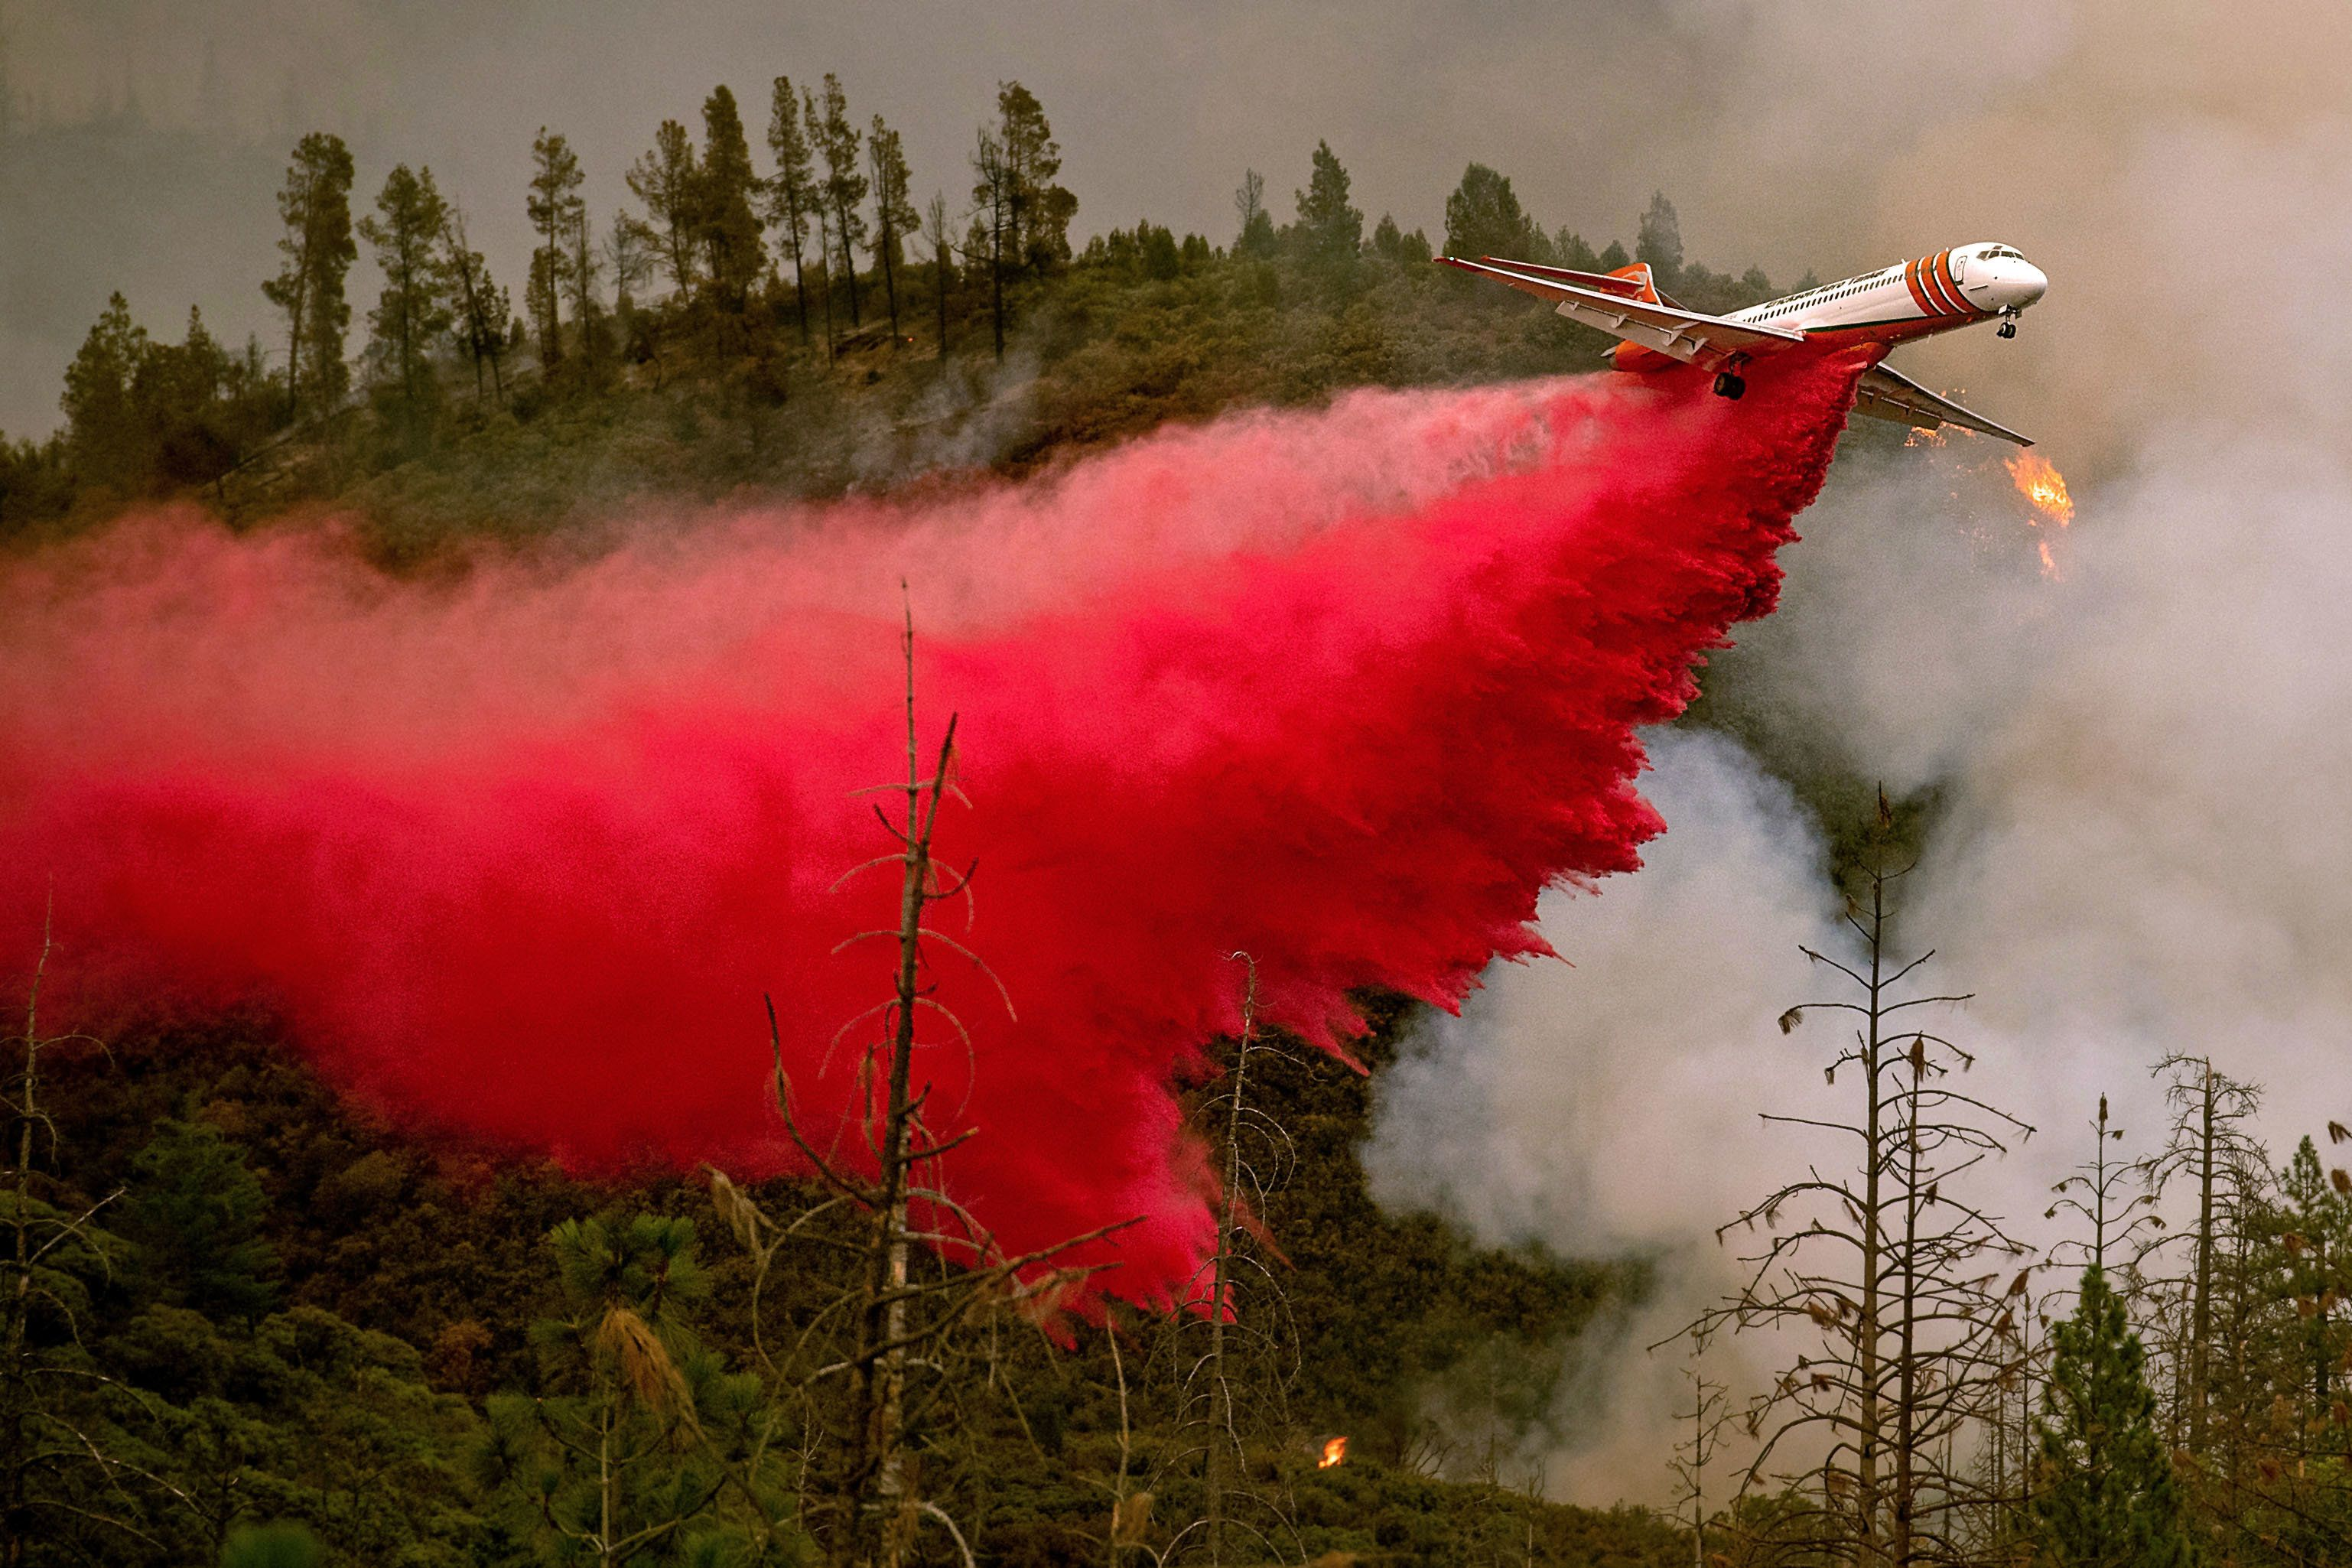 TOPSHOT - An air tanker drops retardant while battling the Ferguson fire in Stanislaus National Forest, near Yosemite National Park, California on July 21, 2018. - A fire that claimed the life of one firefighter and injured two others near California's Yosemite national park has almost doubled in size in three days, authorities said Friday. The US Department of Agriculture (USDA) said the so-called Ferguson fire had spread to an area of 22,892 acres (92.6 square kilometers), and is so far only 7 percent contained. (Photo by NOAH BERGER / AFP)        (Photo credit should read NOAH BERGER/AFP/Getty Images)